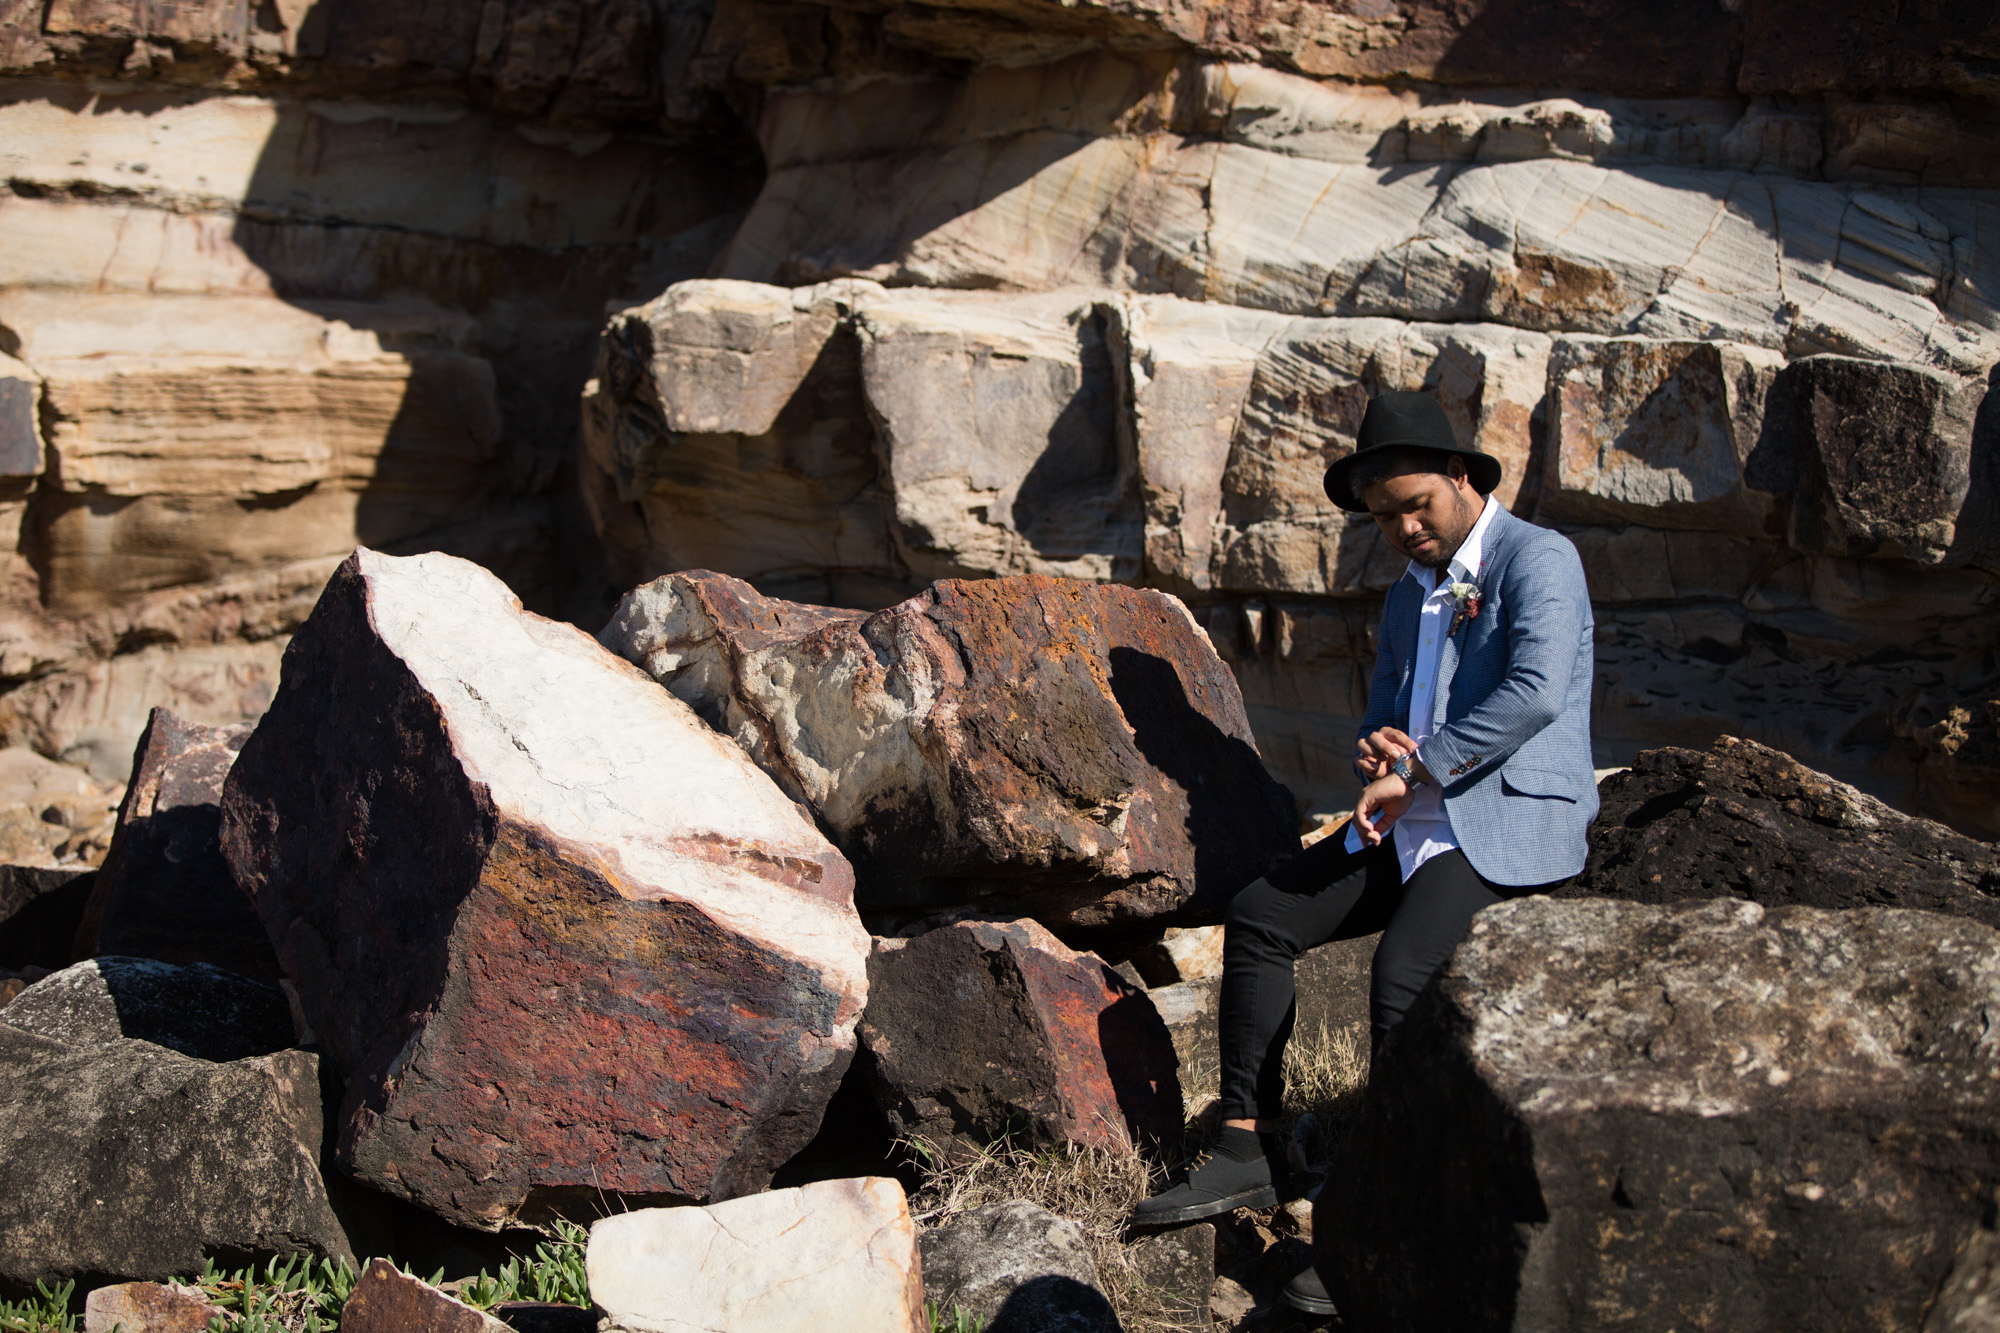 Groom wearing a hat, sitting on a rock checking his watch